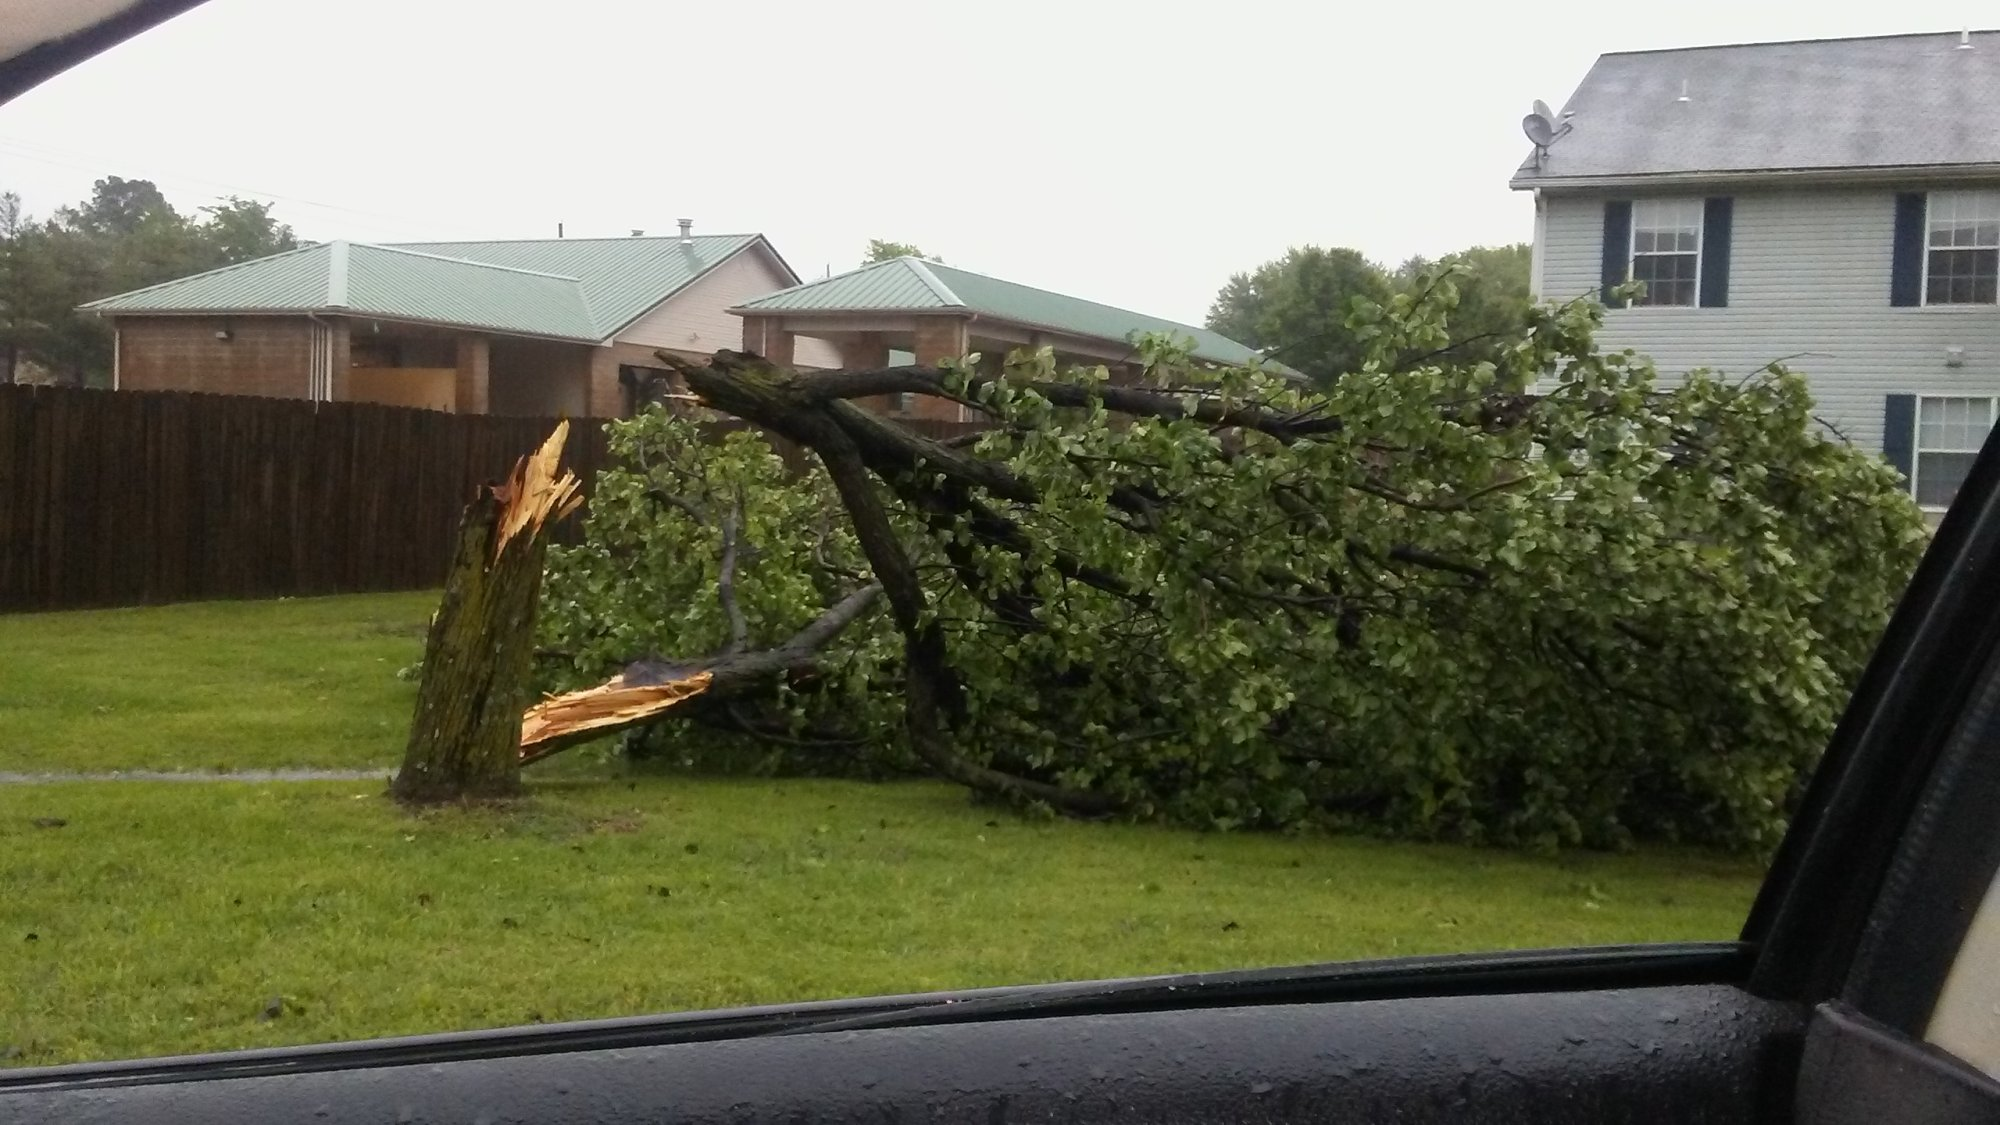 New Hope Road in Rogers